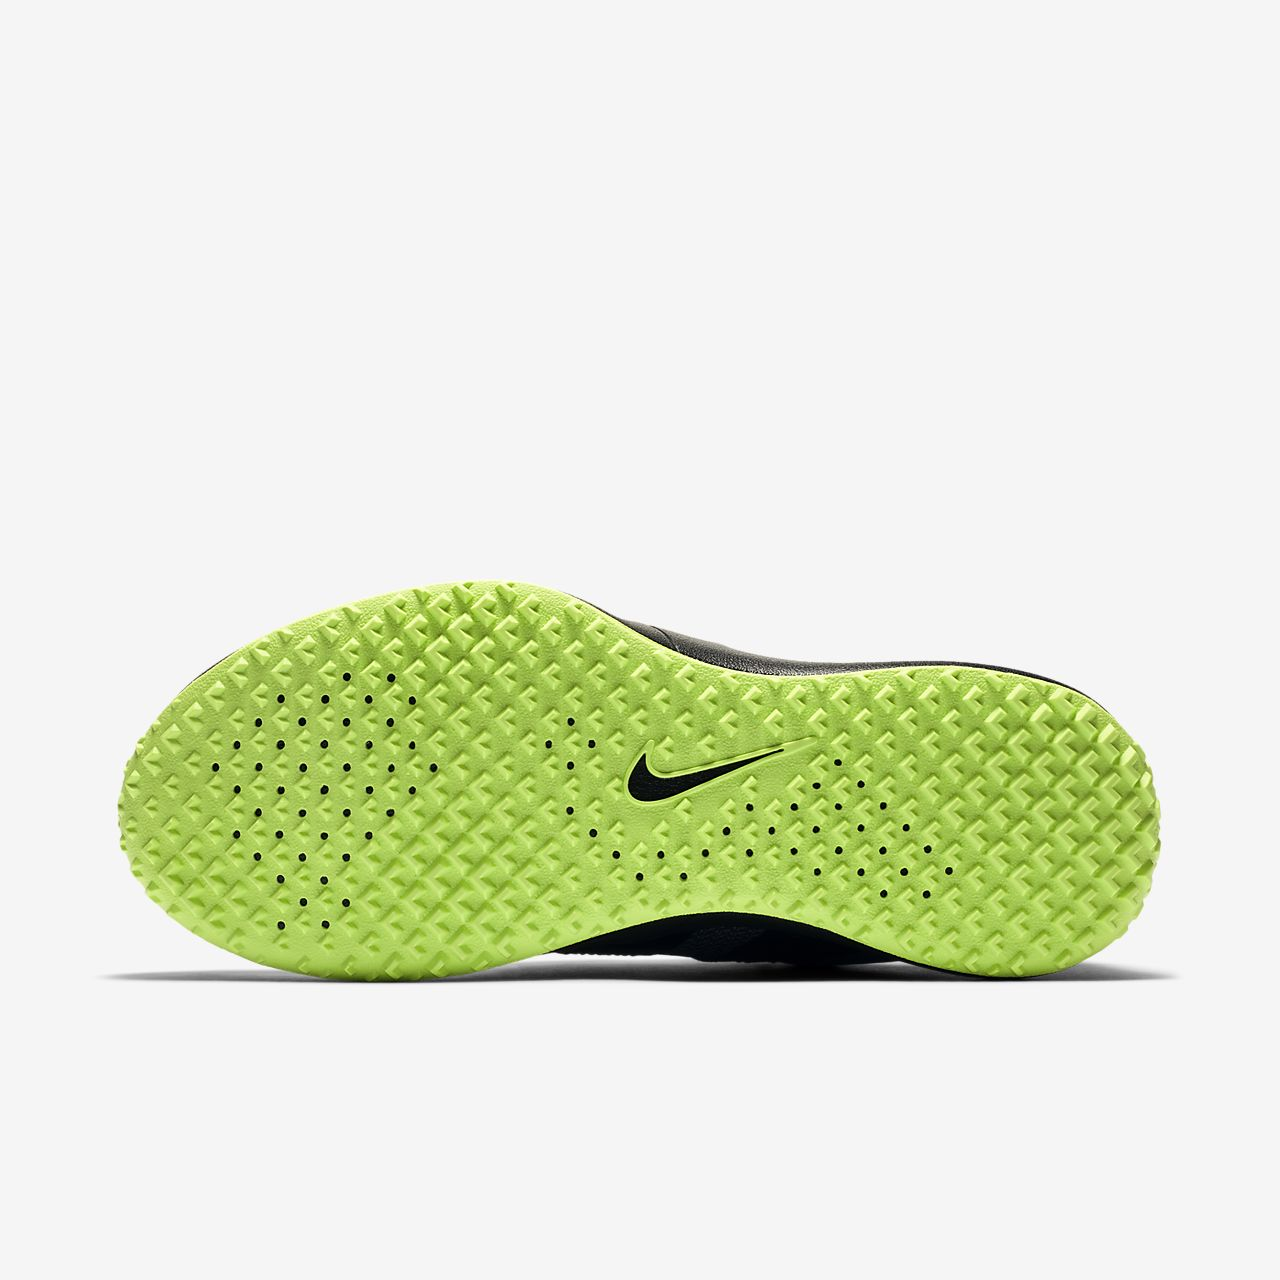 Cozy And Durable Nz Nike Performance Free Men Shoes Tr Fit